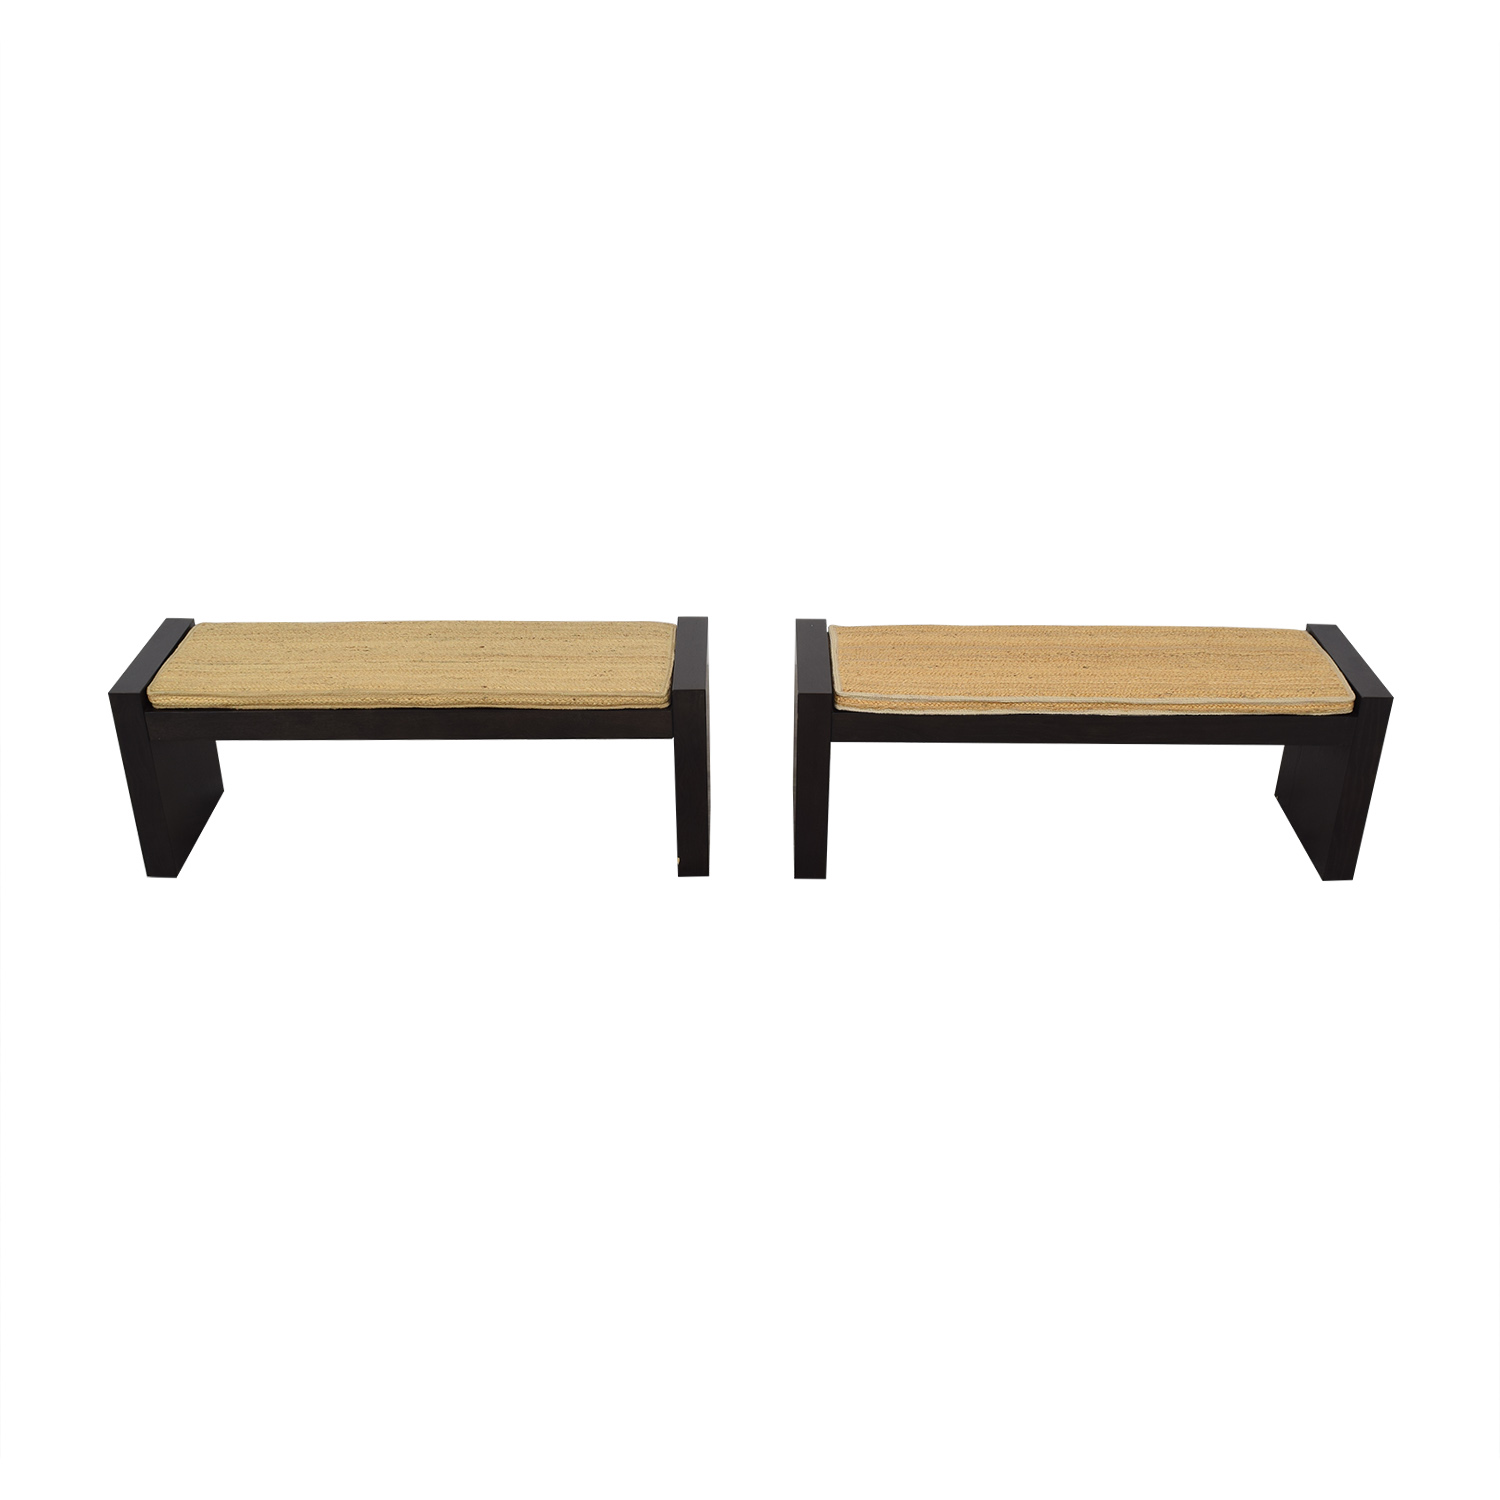 West Elm Terra Dining Benches with Woven Cushions West Elm